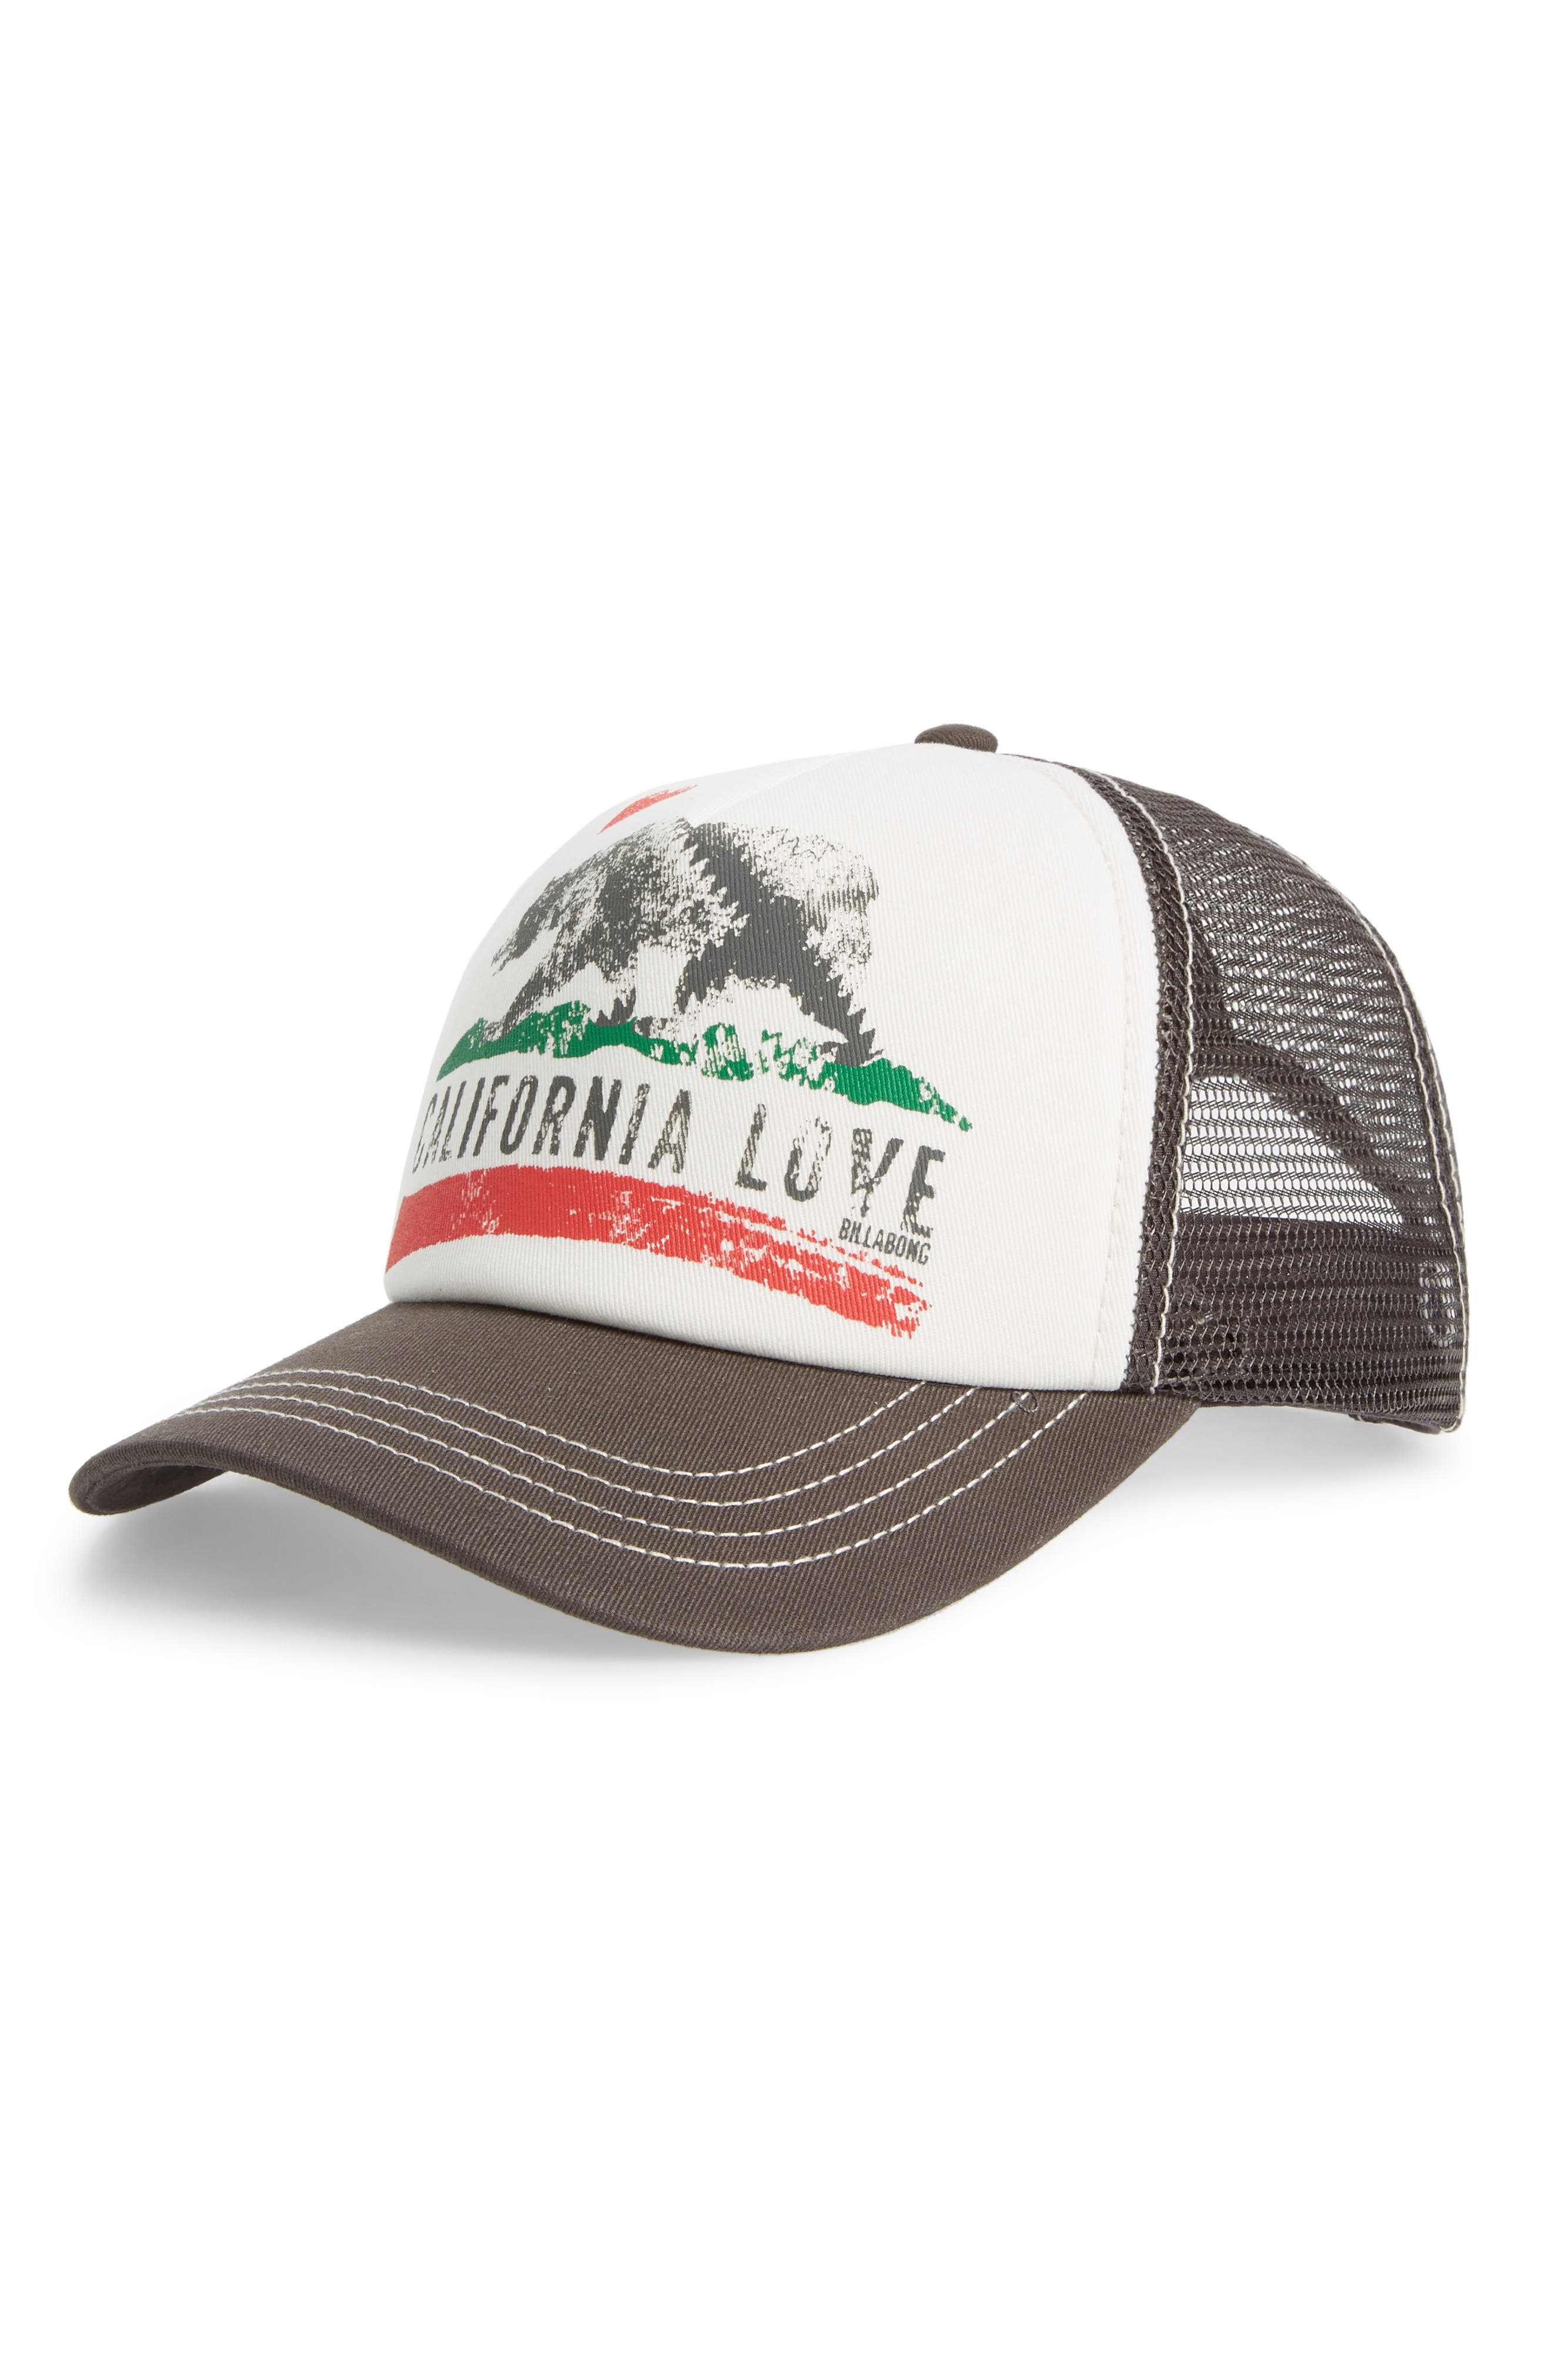 Pitstop Trucker Hat,                             Main thumbnail 1, color,                             CHARCOAL